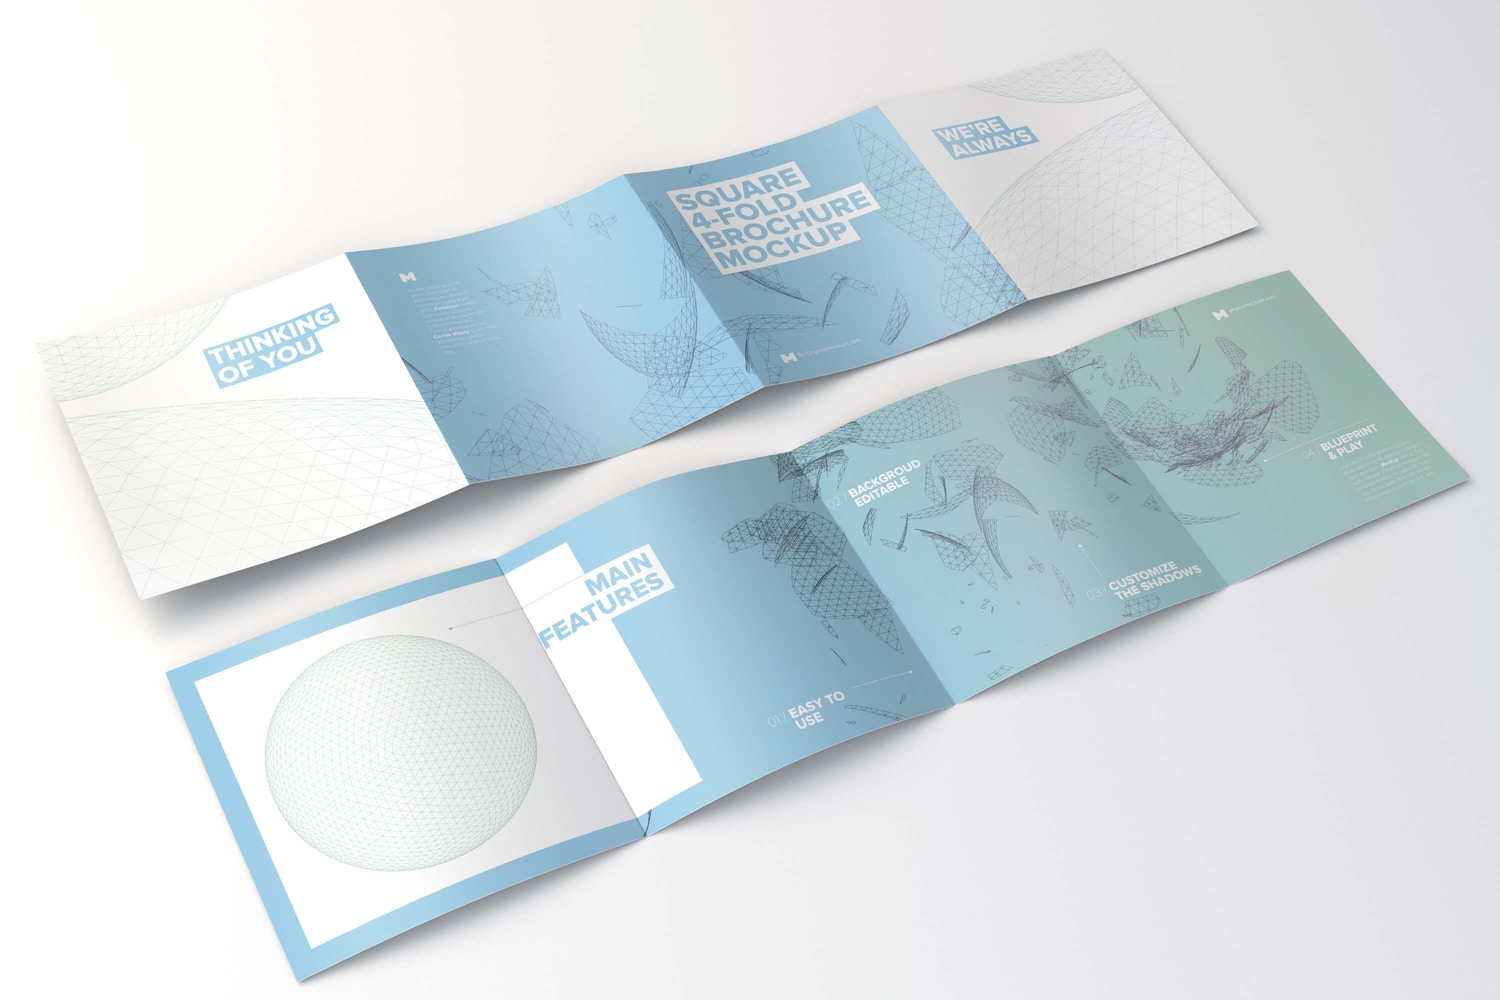 Spread Square 4-Fold Brochure Outside and Inside Mockup 01 by Original Mockups on Original Mockups